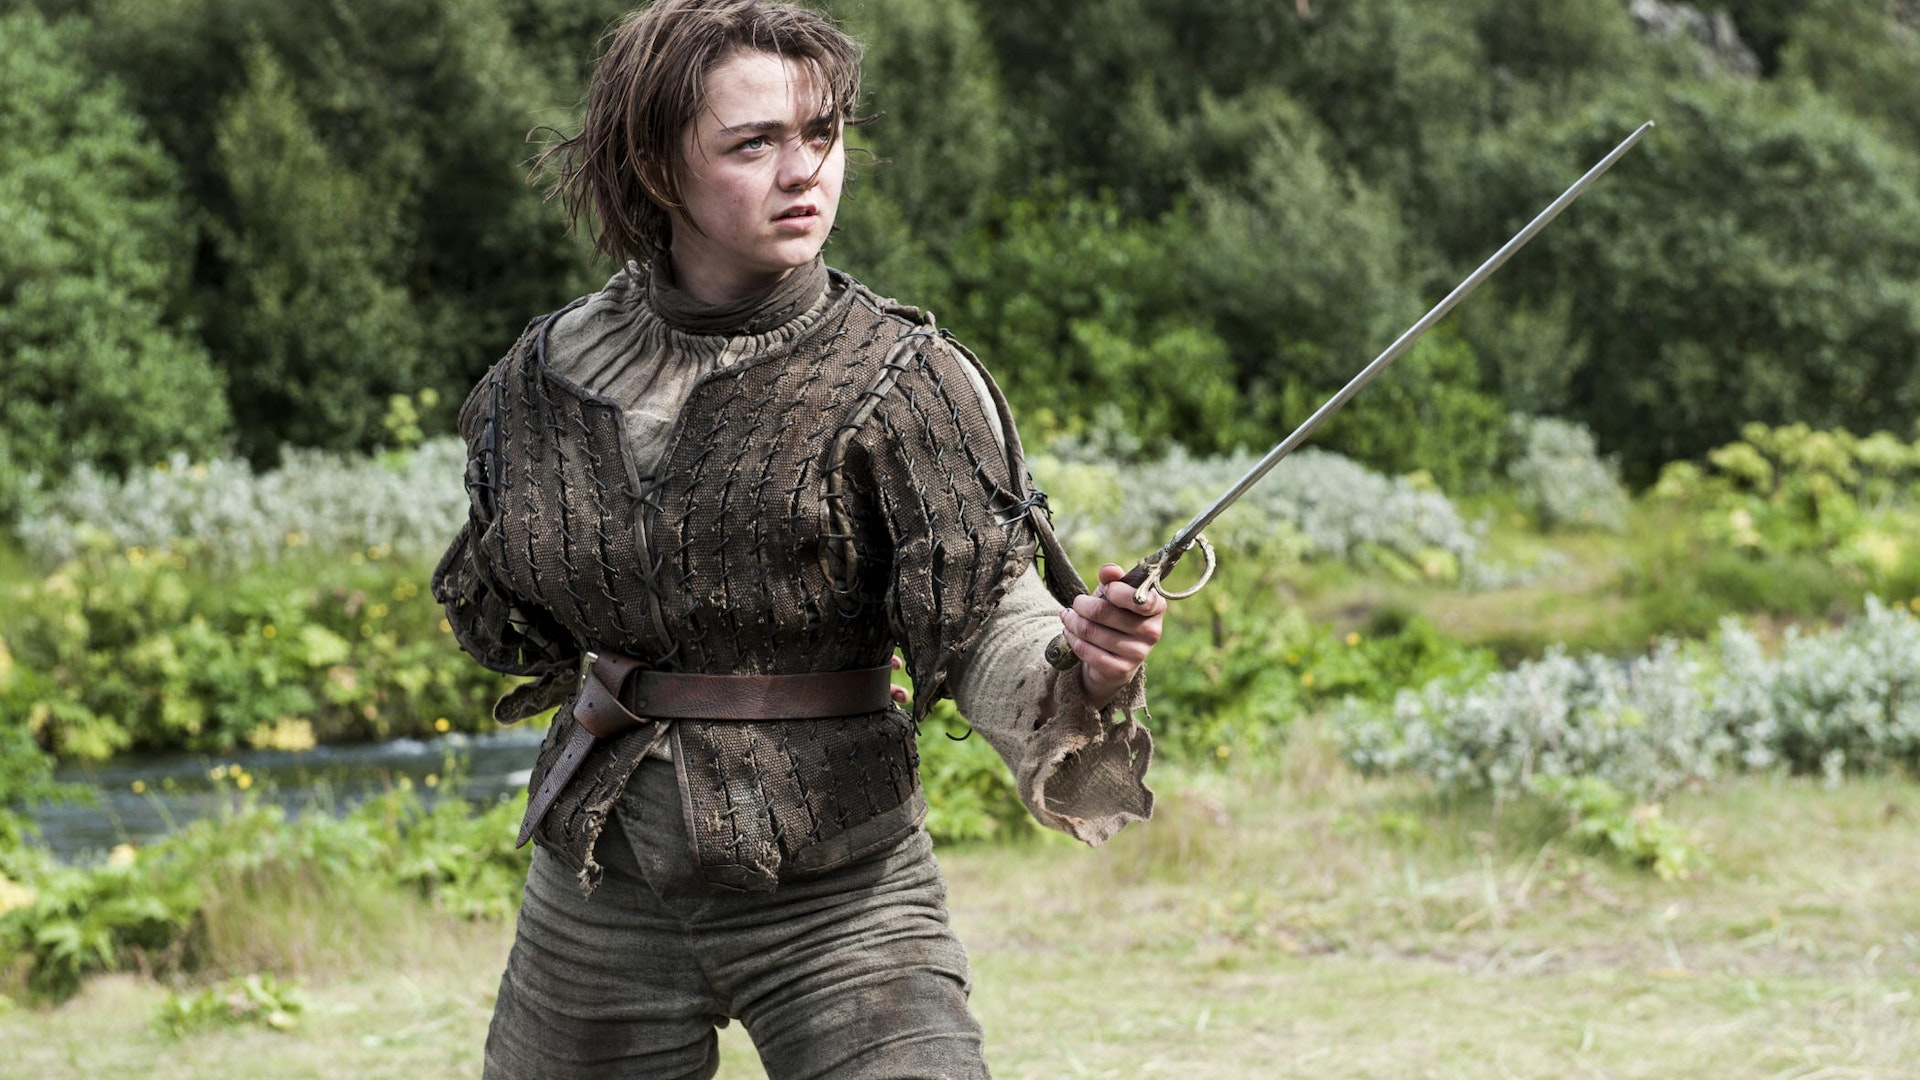 season-4-episode-5-first-of-his-name-game-of-thrones-37022184-2100-13971